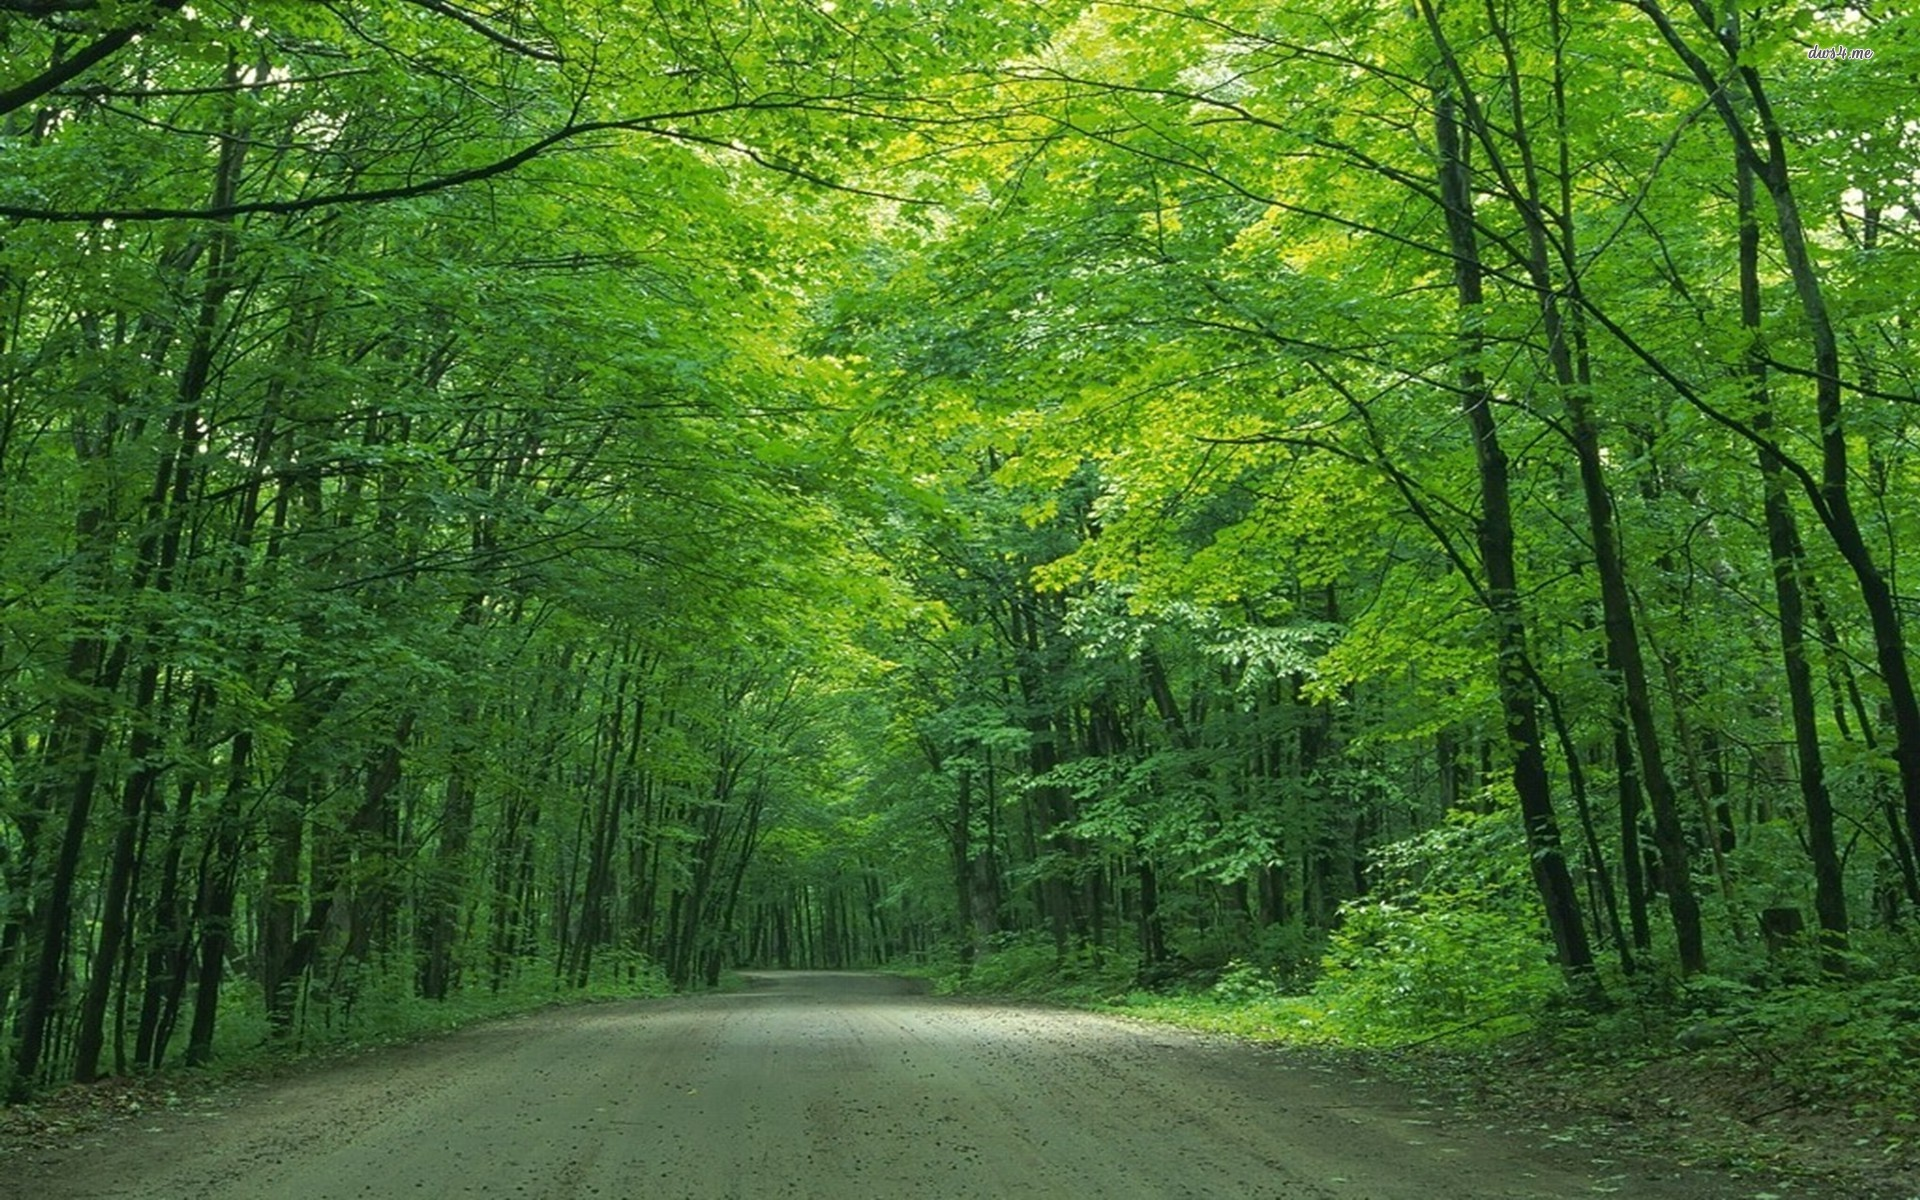 trees tree wallpapers road under nature forest hd greenery jooinn landscapes